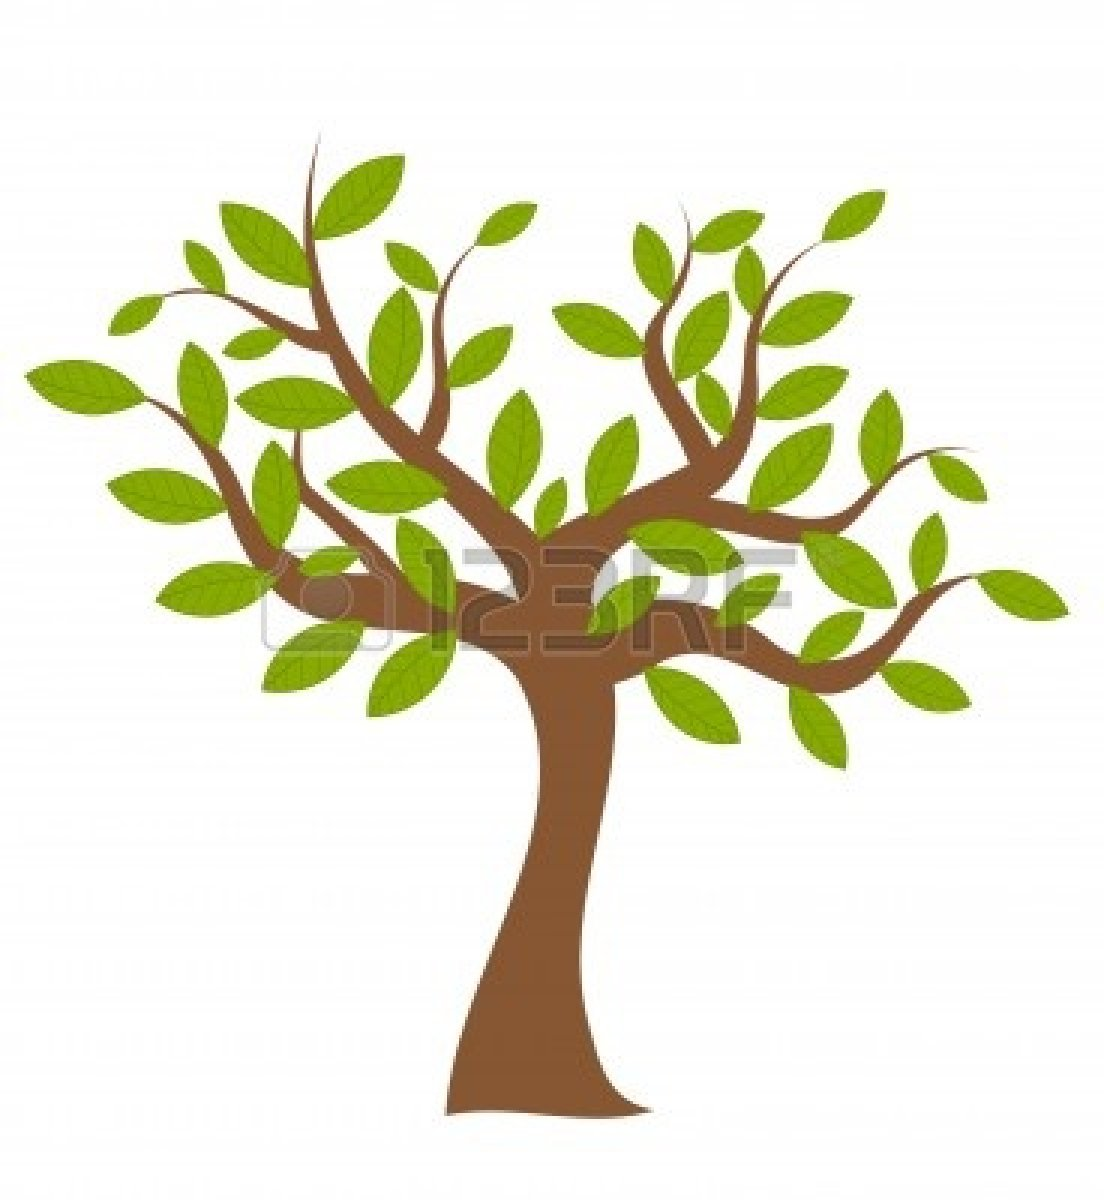 spring-tree-clipart-9423403-spring-tree-with-green-leaves-over-white    Spring Tree Clip Art